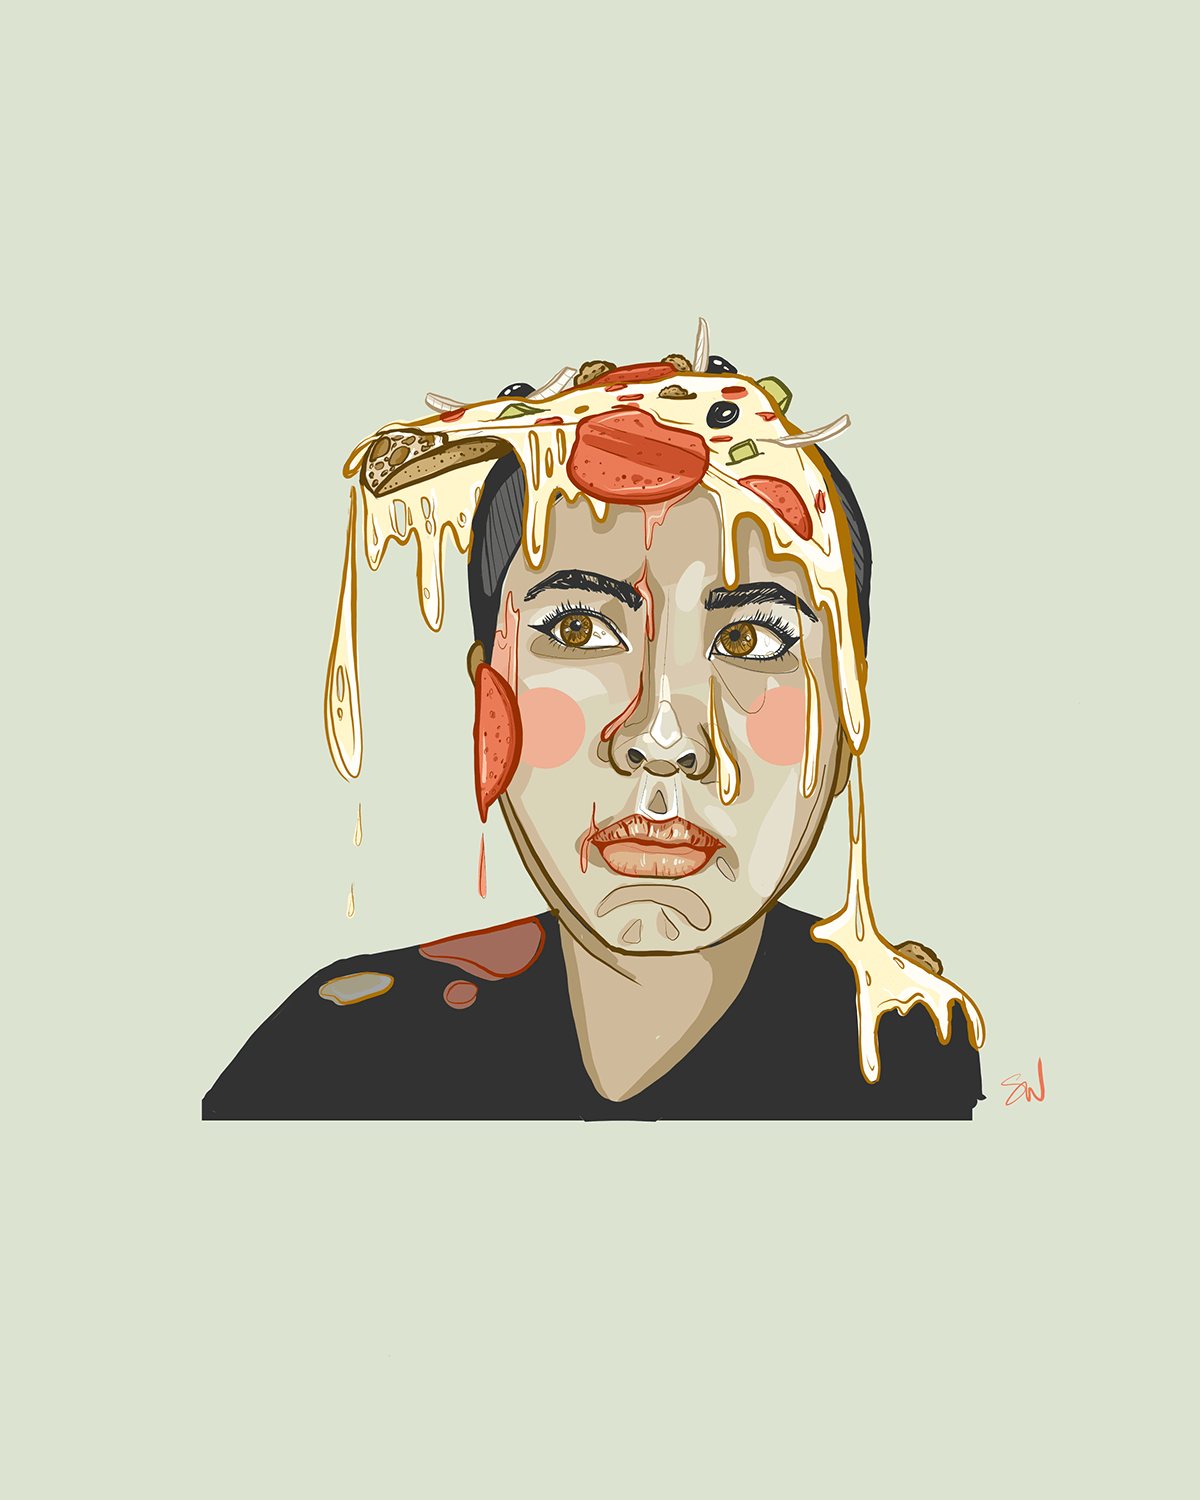 woman with a slice of pizza on her head with the cheese dripping down over her face